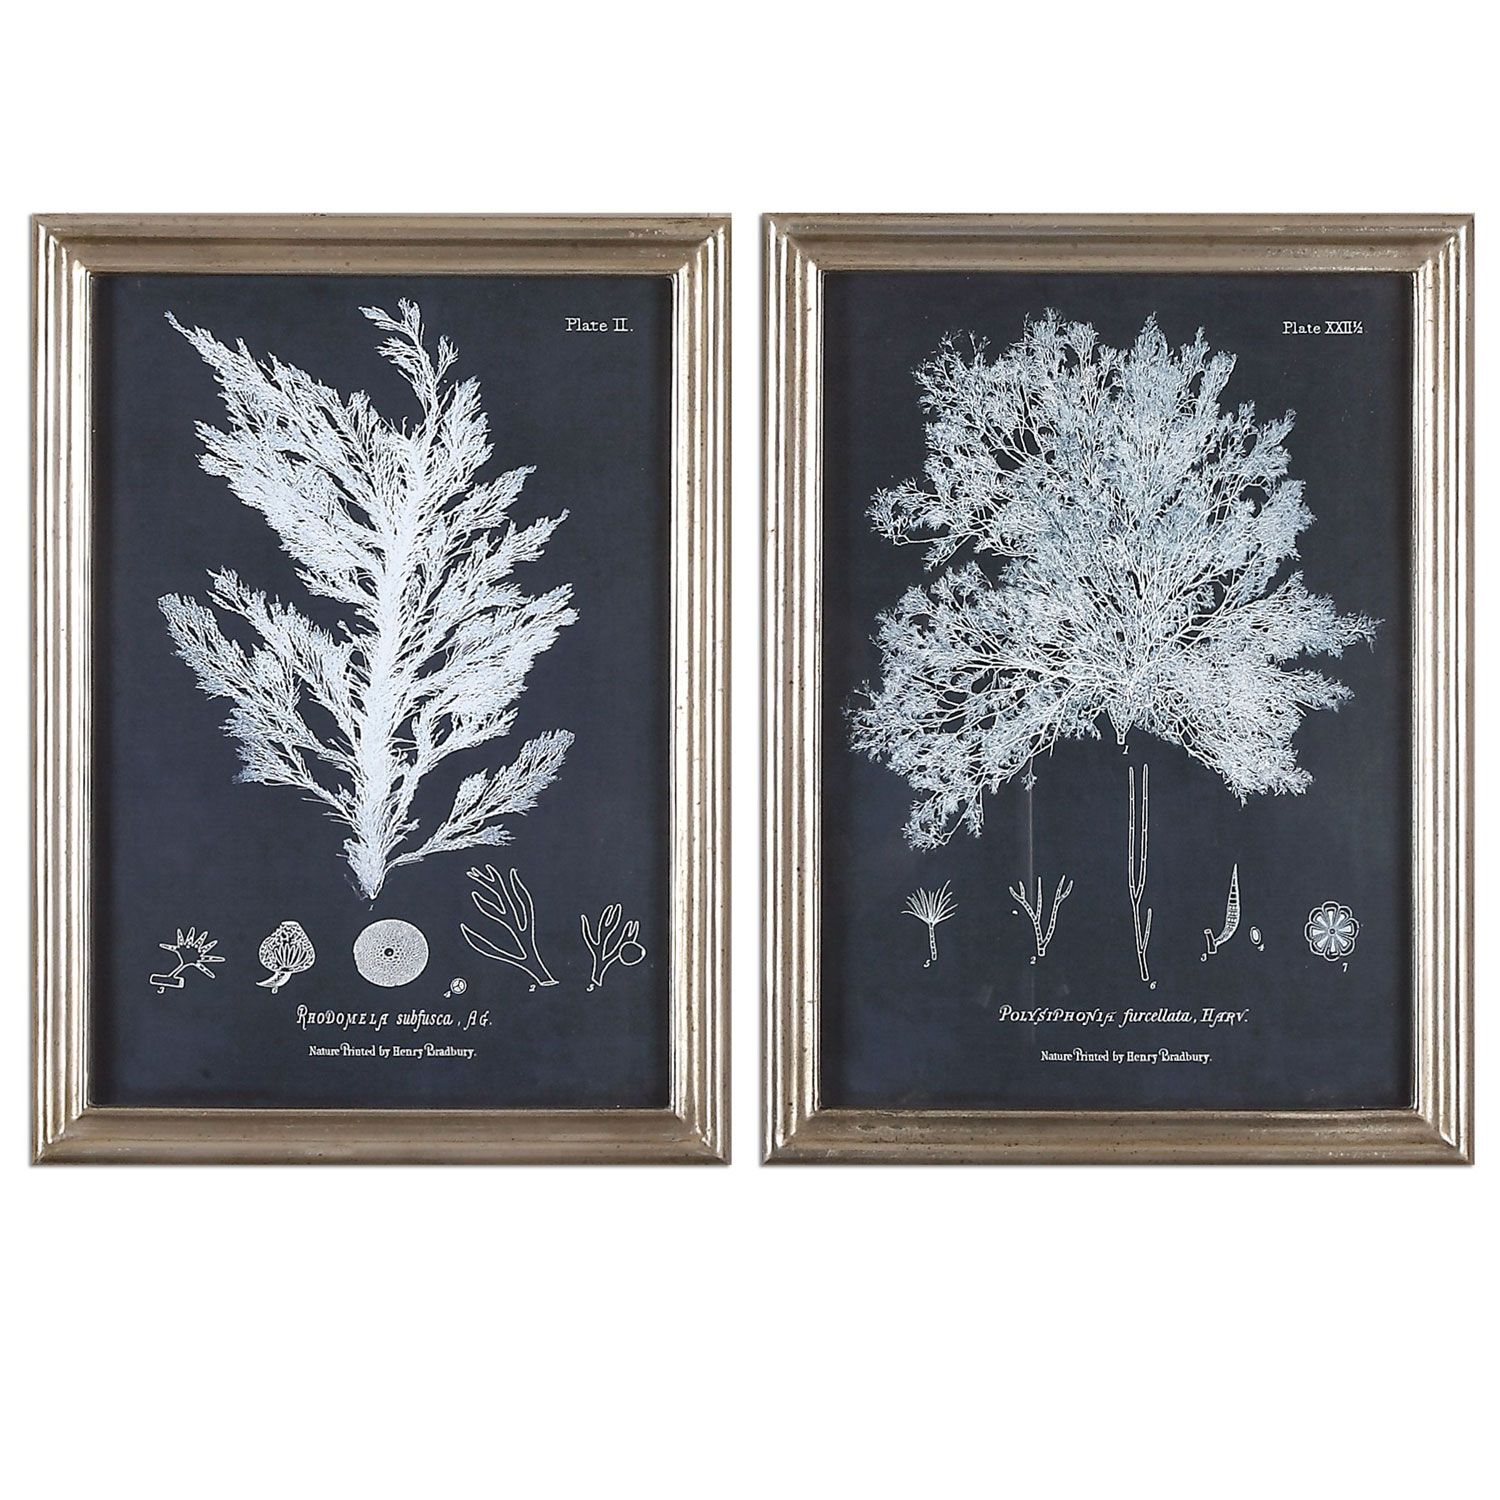 Uttermost blue coral art on sale now guaranteed low prices